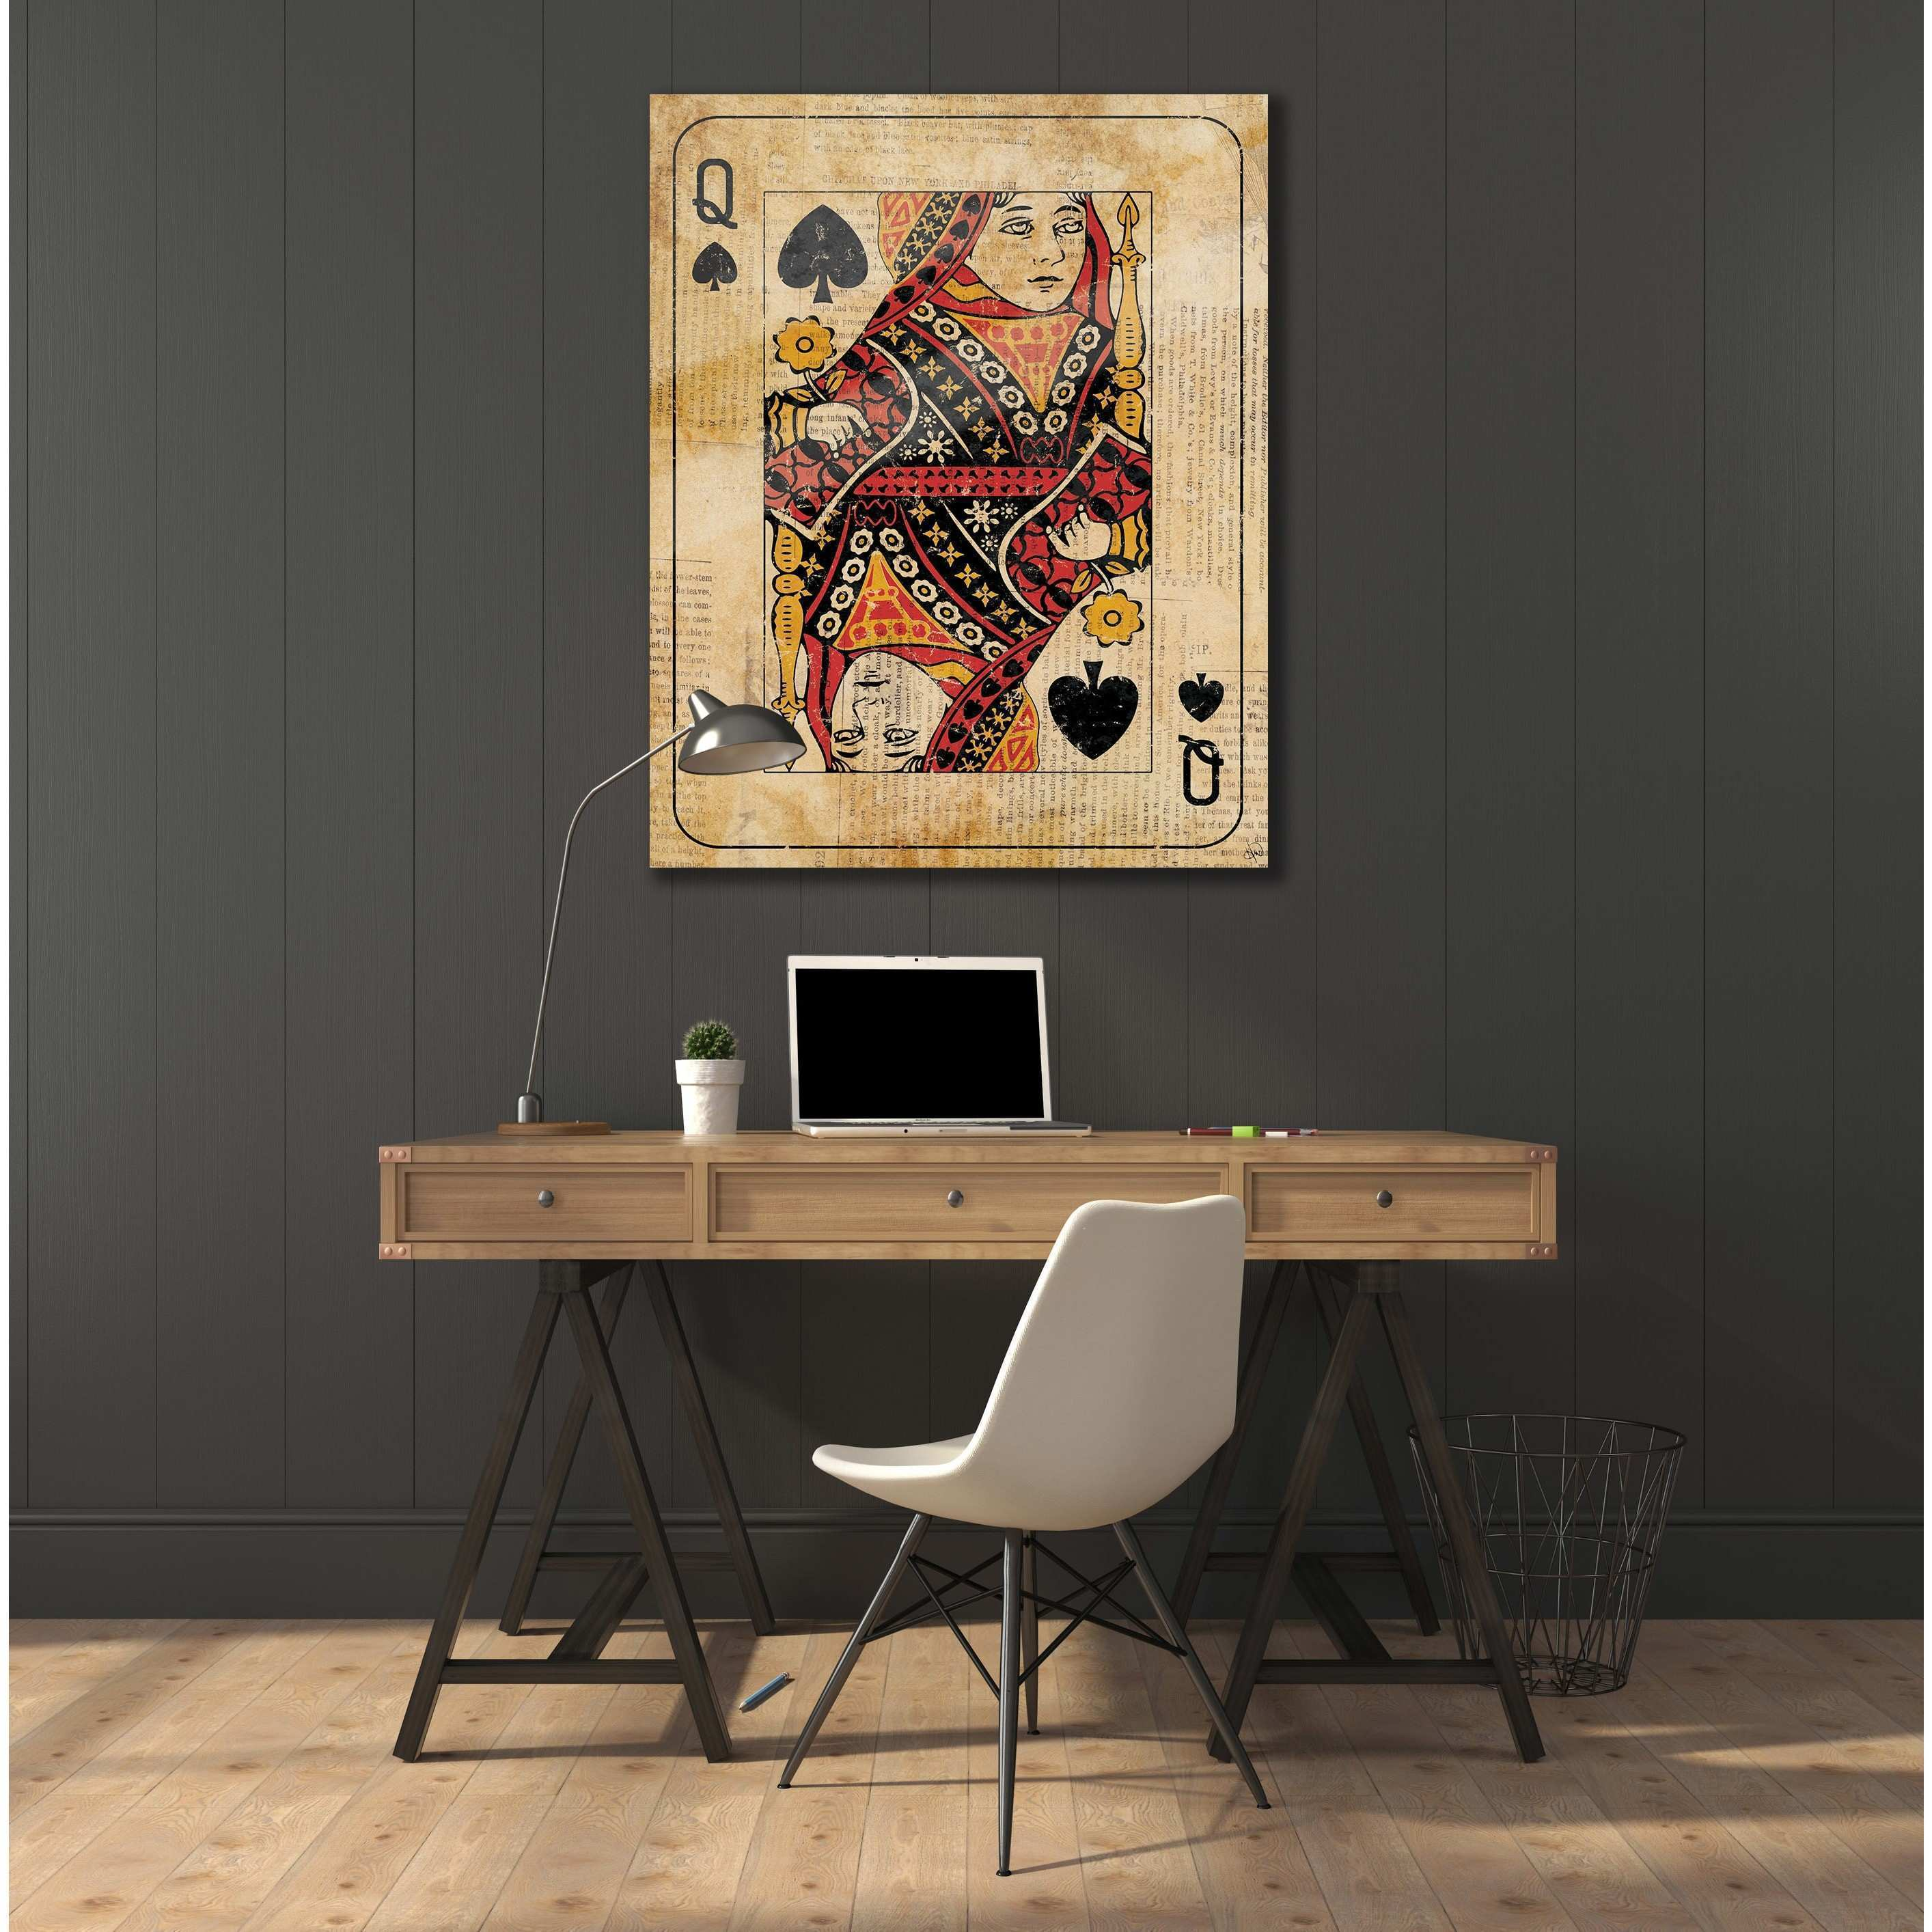 Shop Vintage Queen Playing Card Wall Art on Acrylic Free Shipping